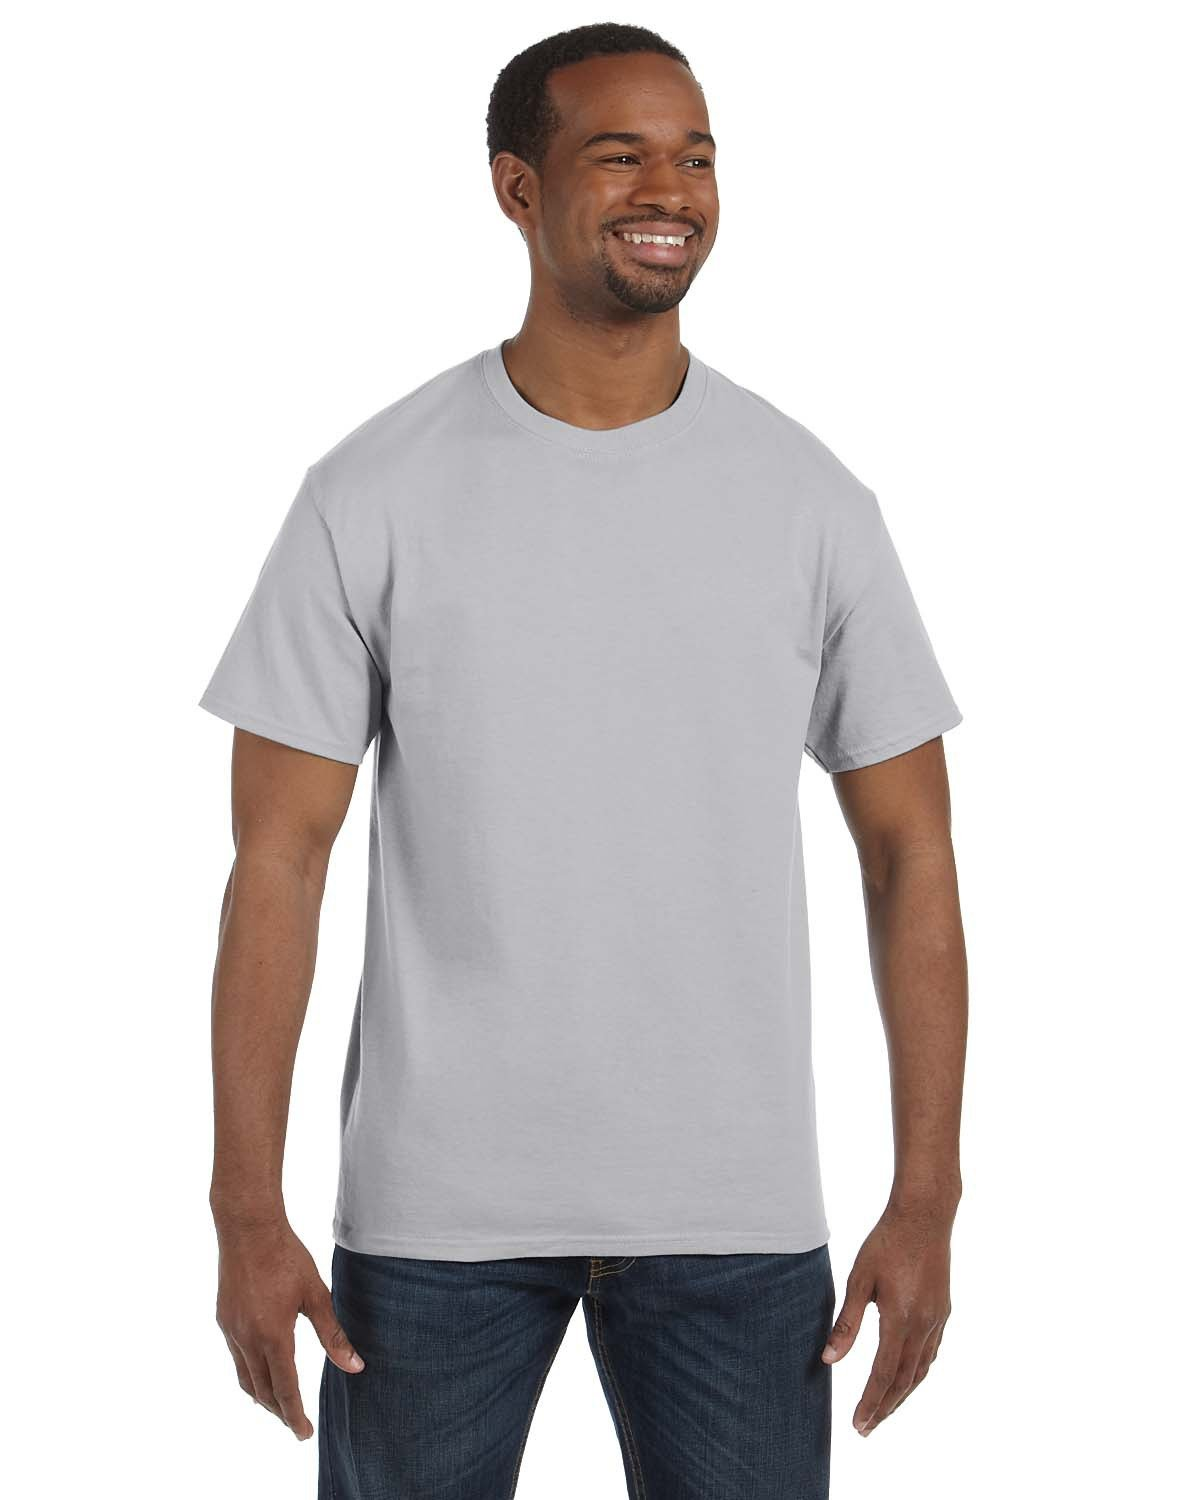 Gildan - G500 - Adult 5.3 oz. T-Shirt